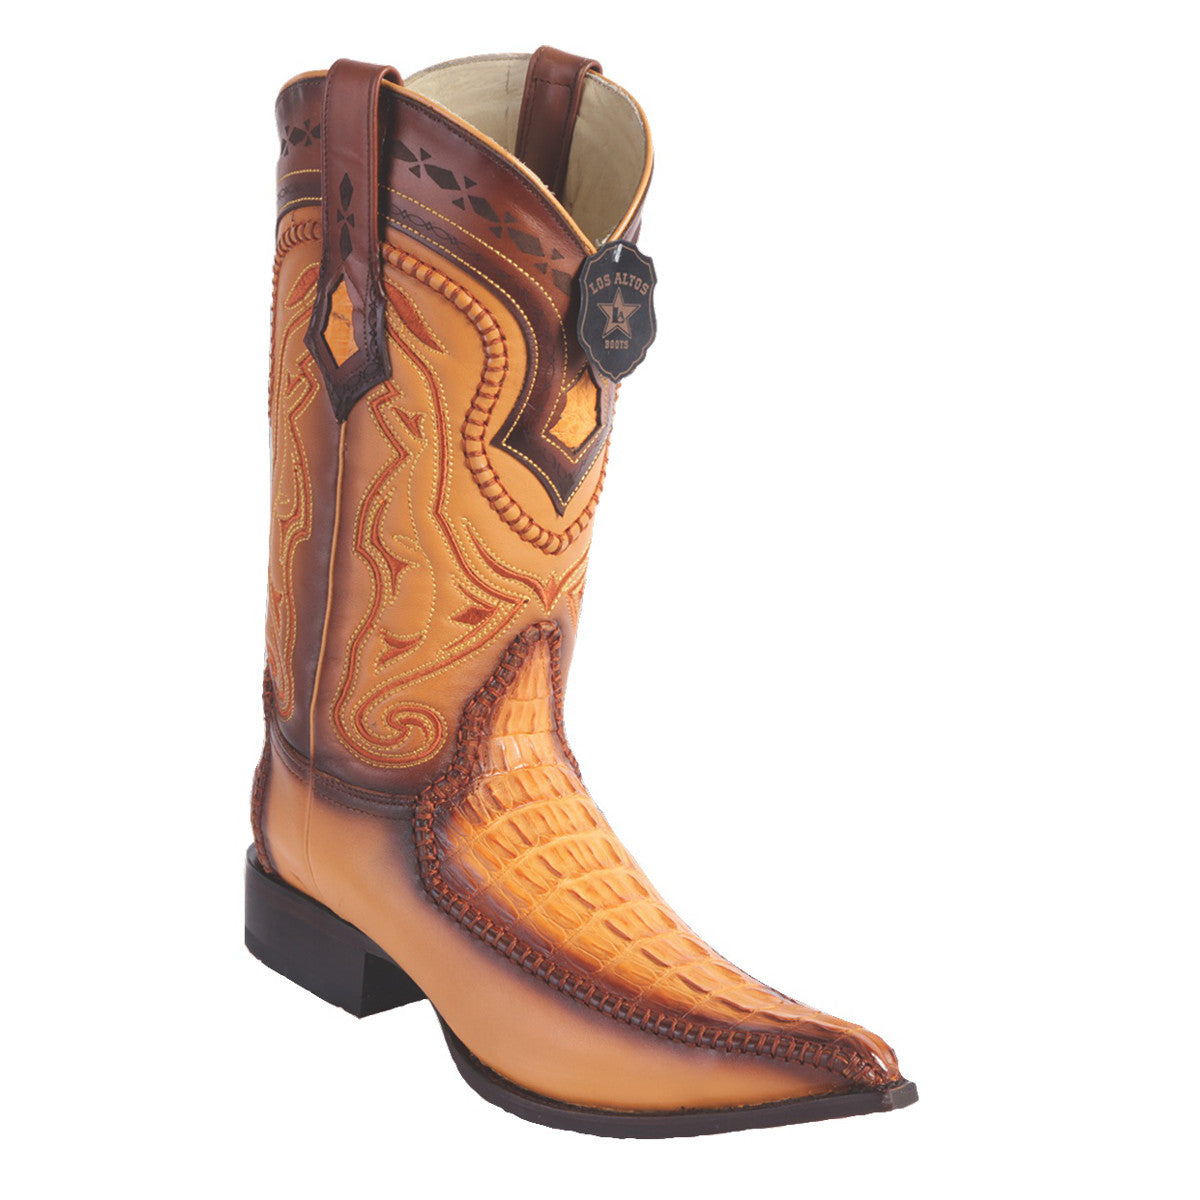 Los Altos Boots 3x Toe Stitched Caiman Tail w/Deer